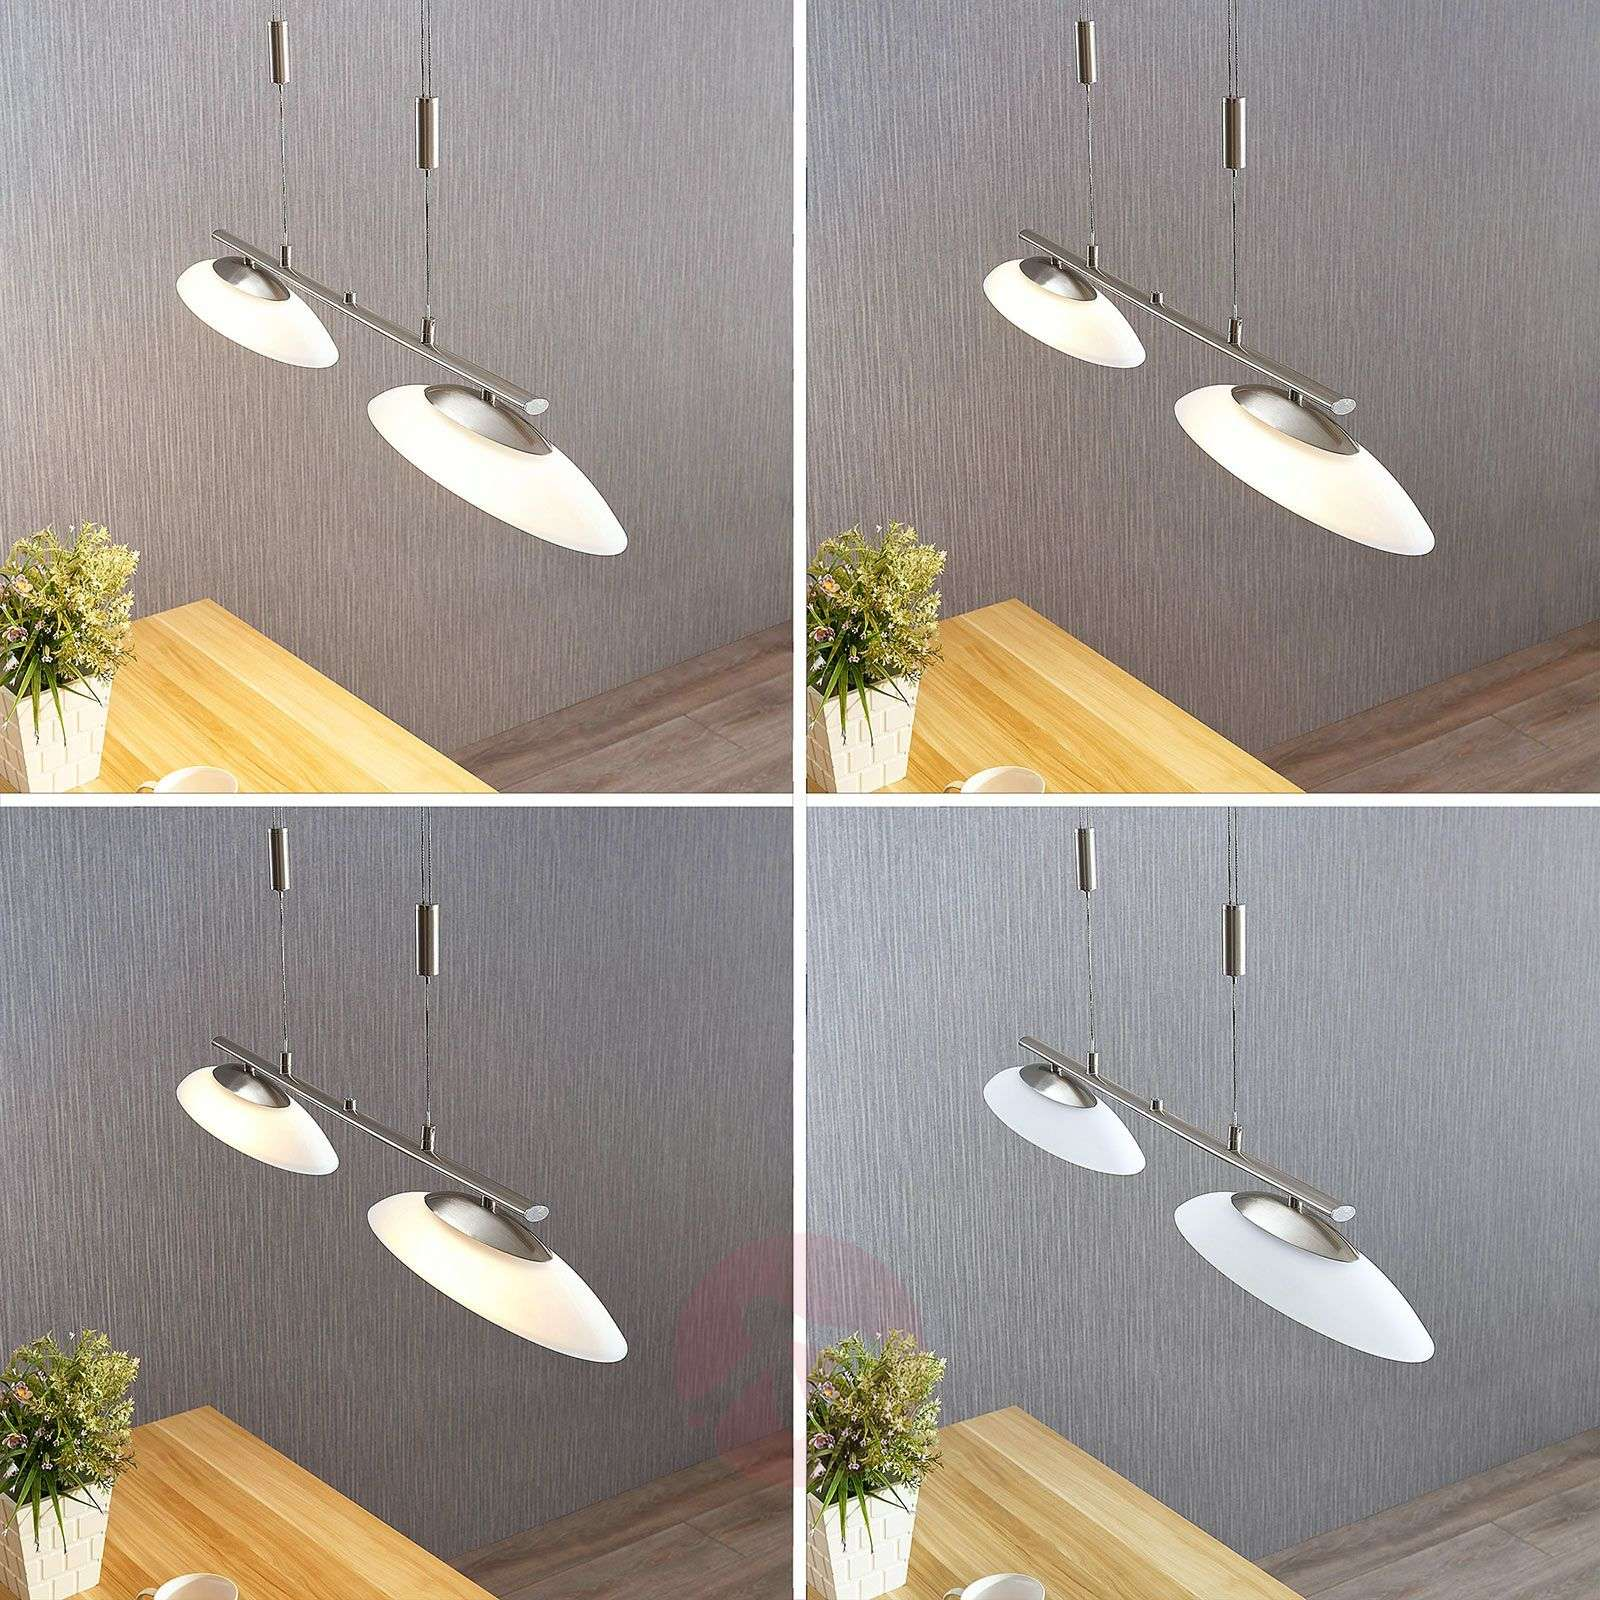 Suspension LED dimmable Judie à 2 lampes-9621306-014